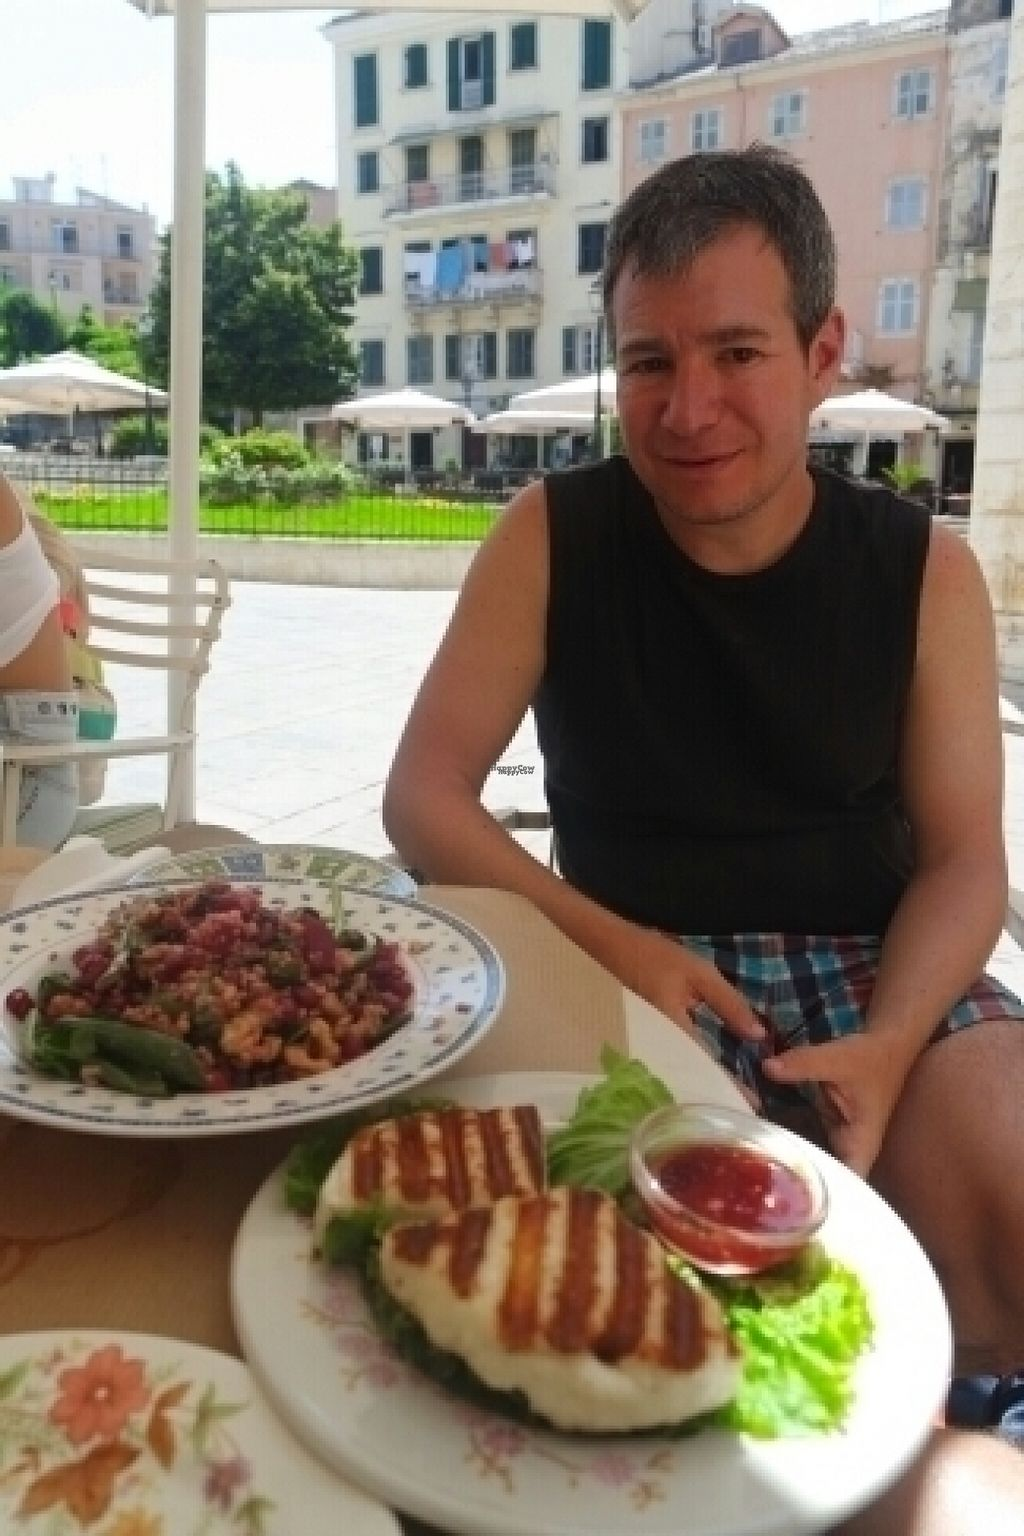 """Photo of Pane e Souvlaki  by <a href=""""/members/profile/mrrfrost"""">mrrfrost</a> <br/>light lunch <br/> August 1, 2016  - <a href='/contact/abuse/image/61709/164144'>Report</a>"""